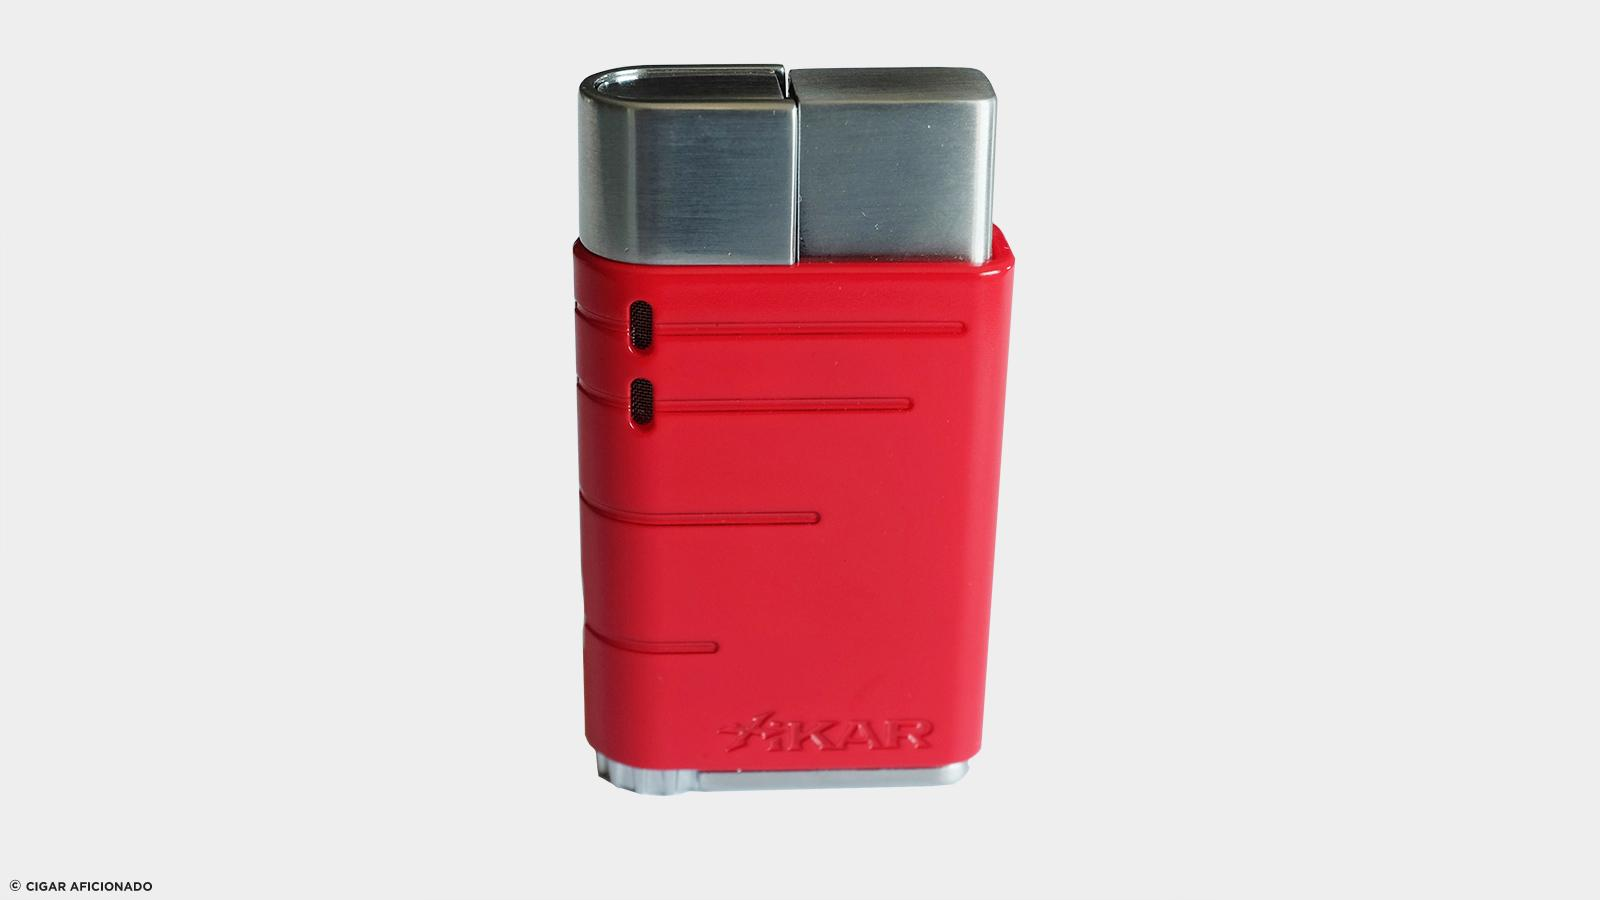 Review—Xikar Linea Single-Flame Lighter